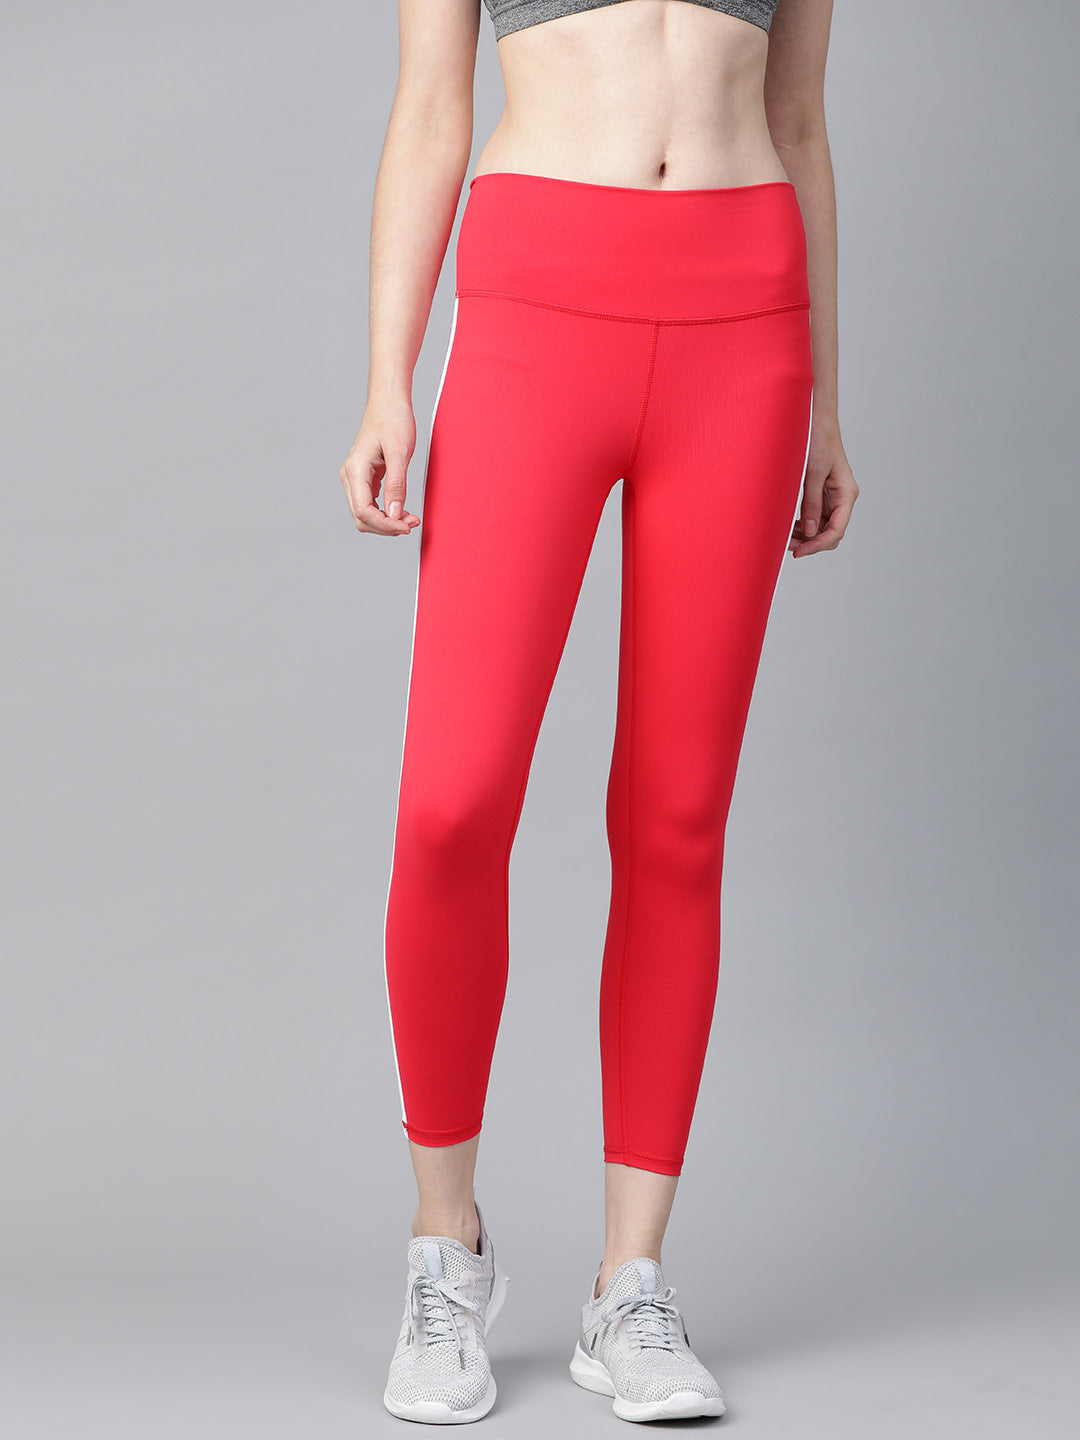 Fitkin Women Red Solid Cropped Training Tights